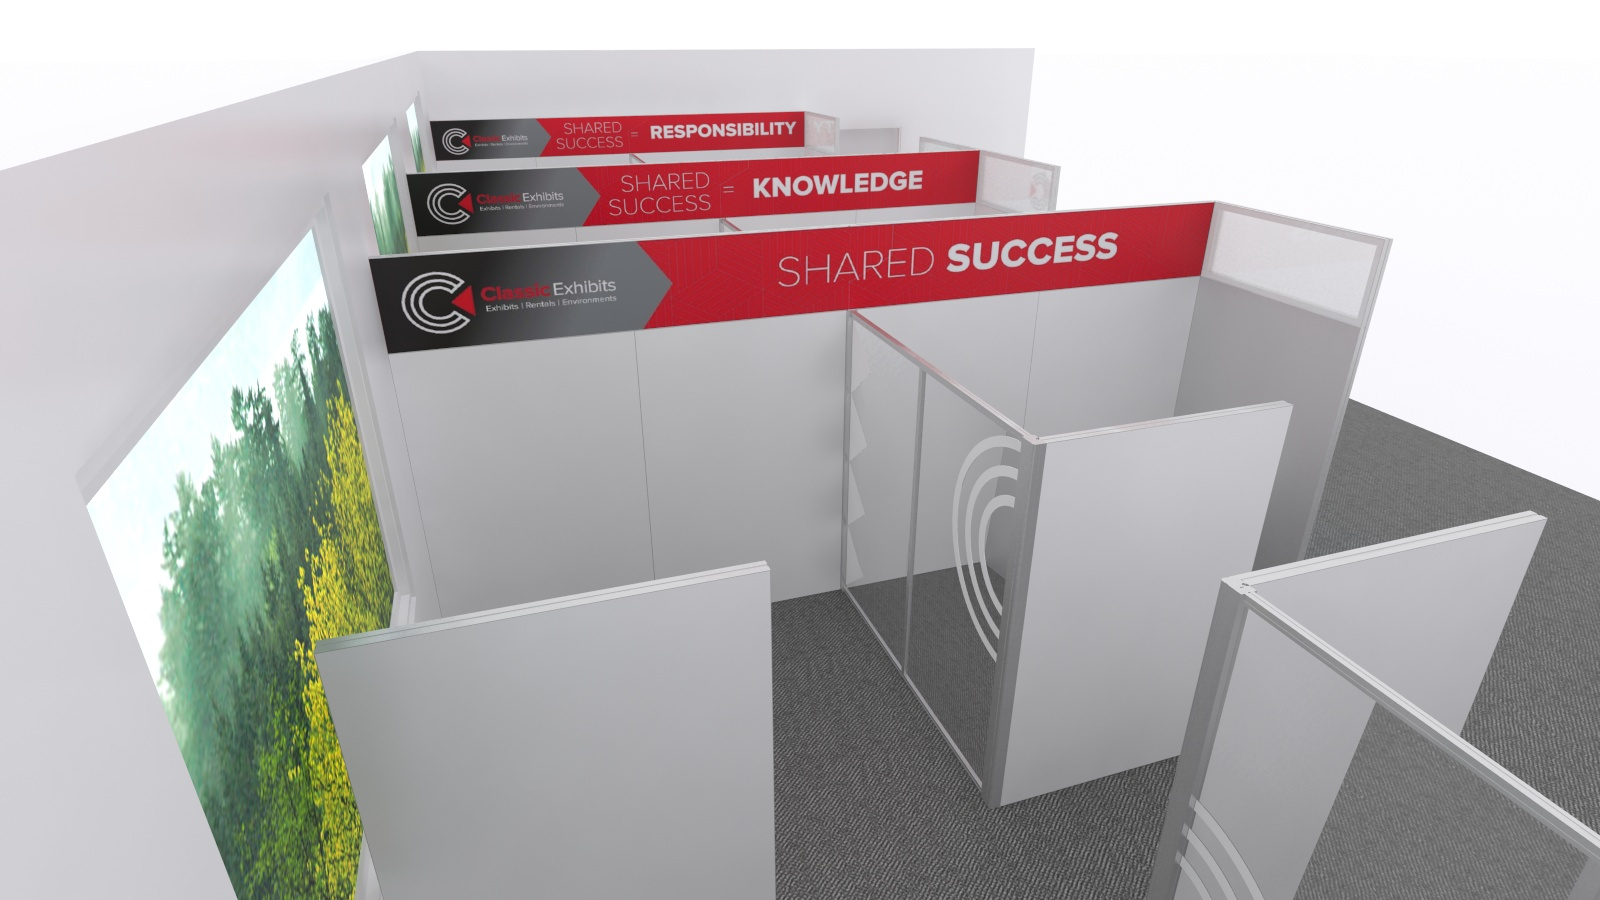 050520-Office-Design_View10